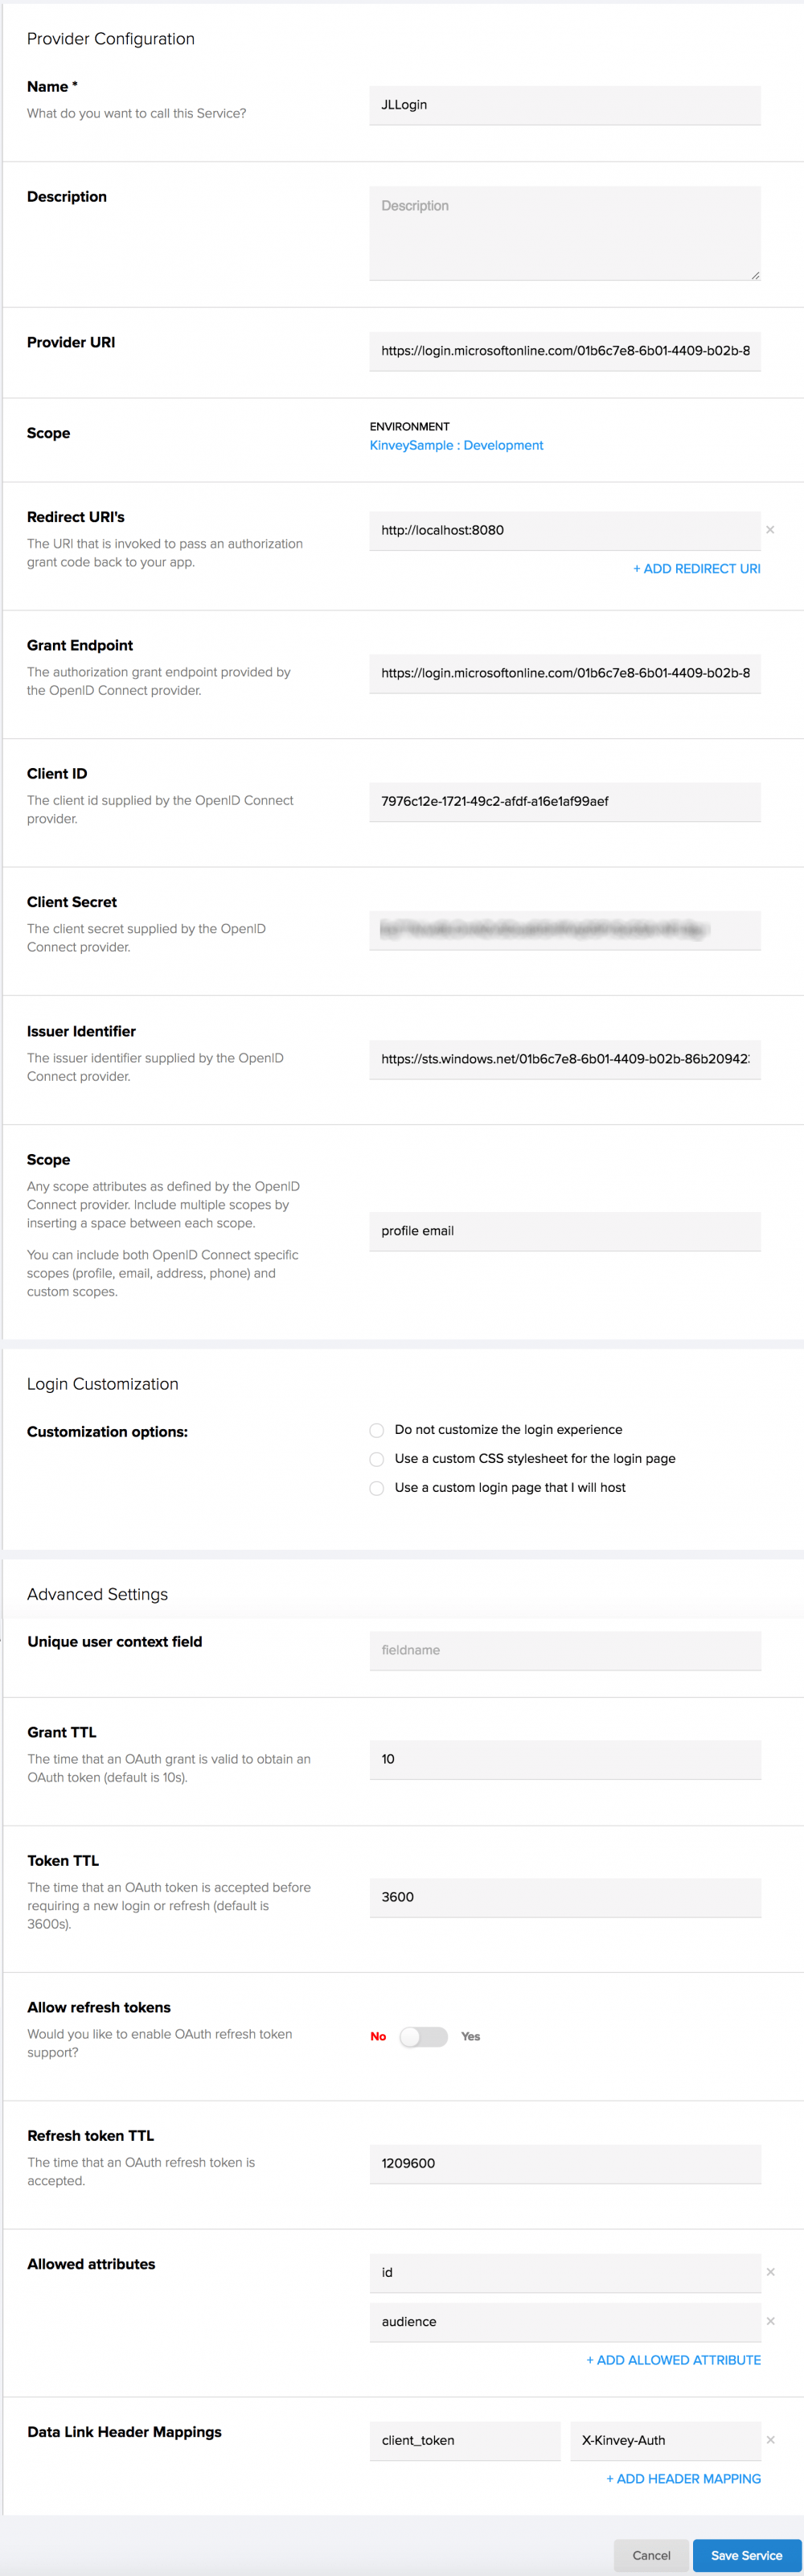 auth-service-settings